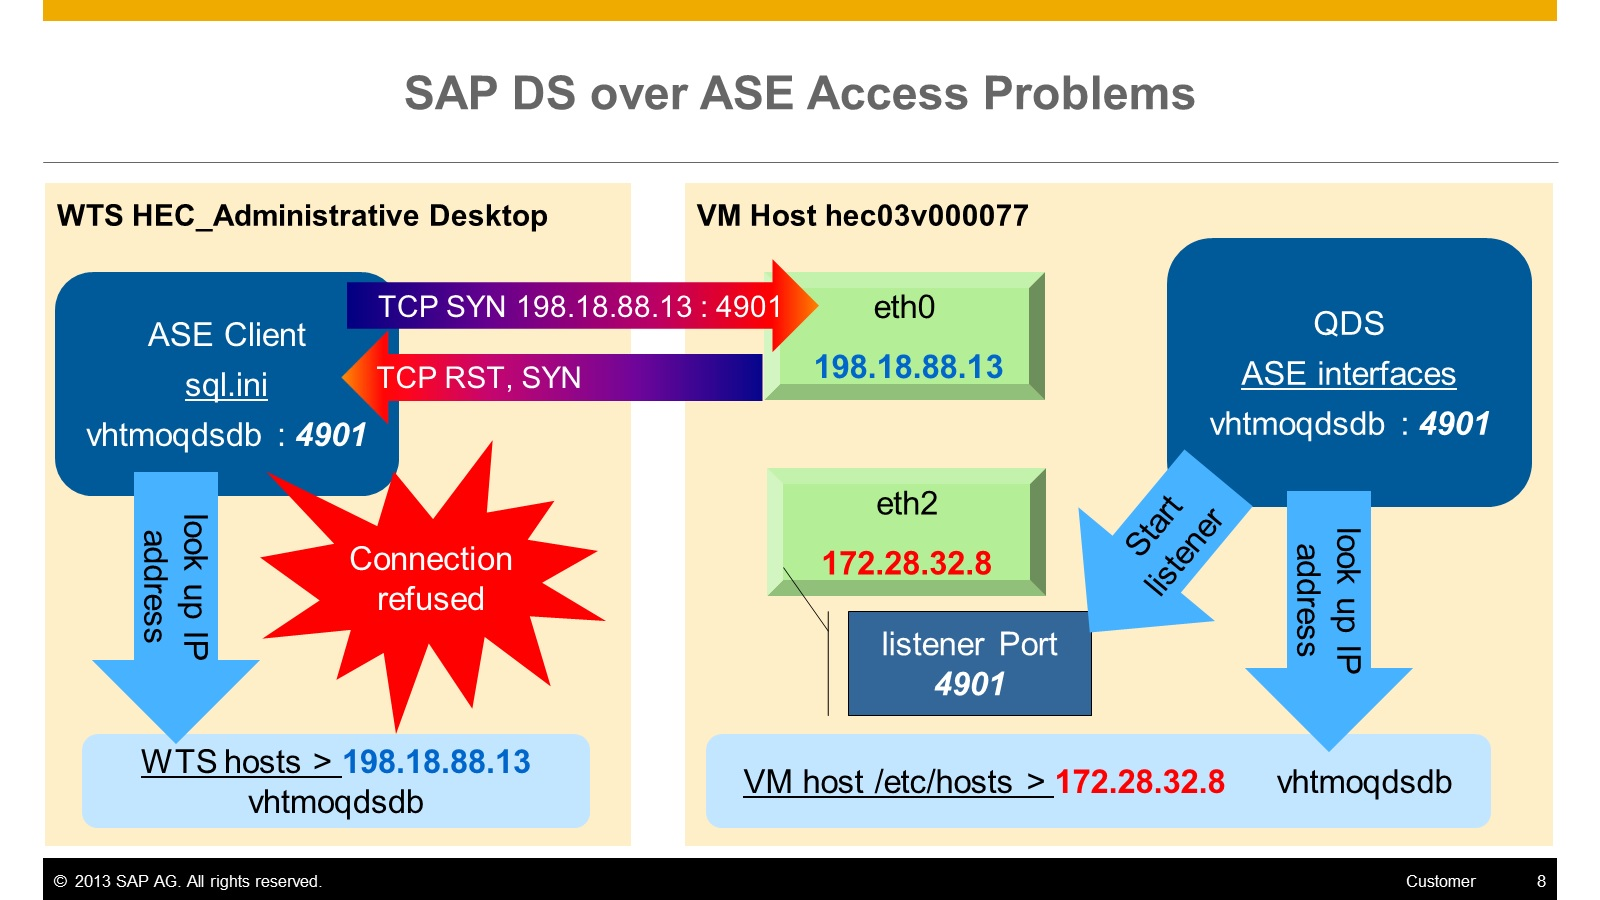 SAP_DS_over_SASE_Access_Problems.jpg